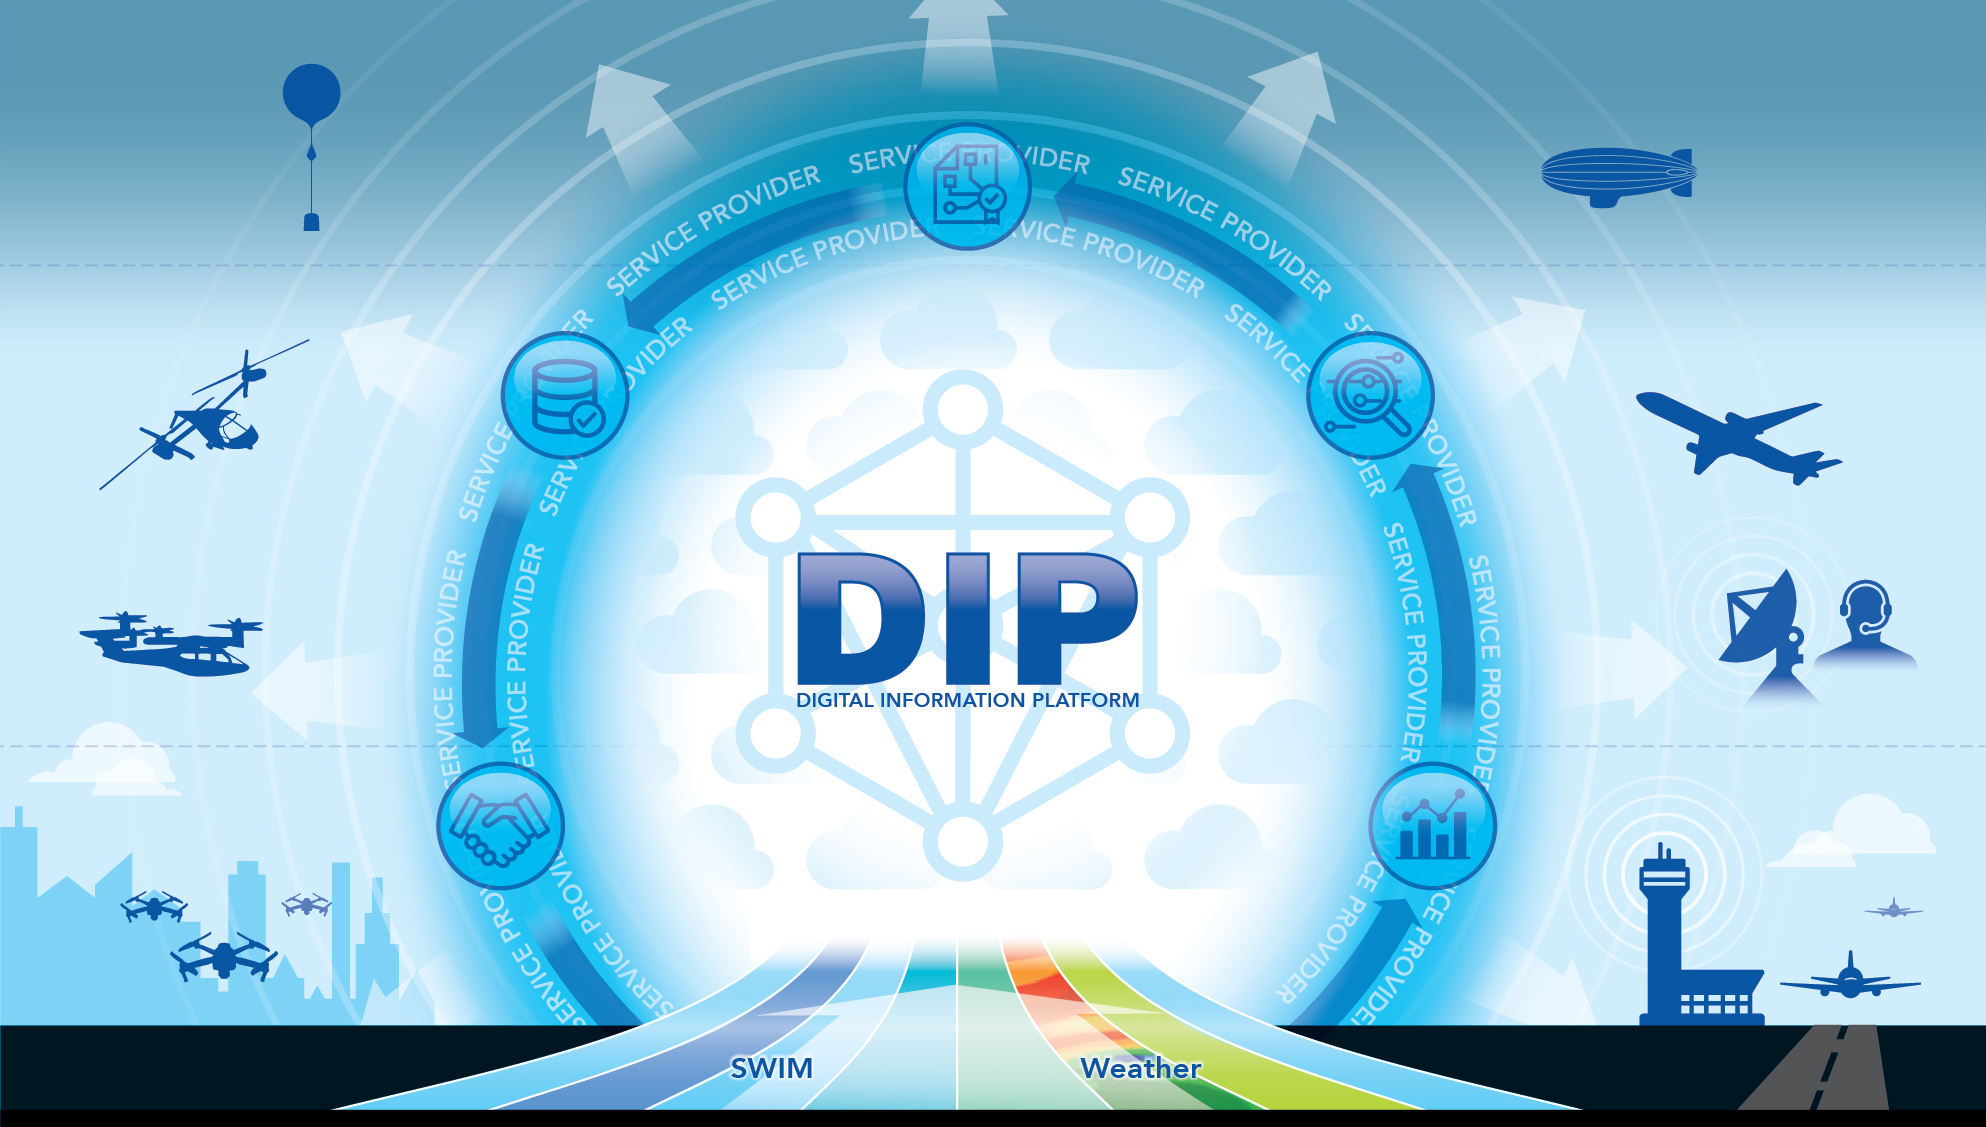 Placeholder graphic for DIP